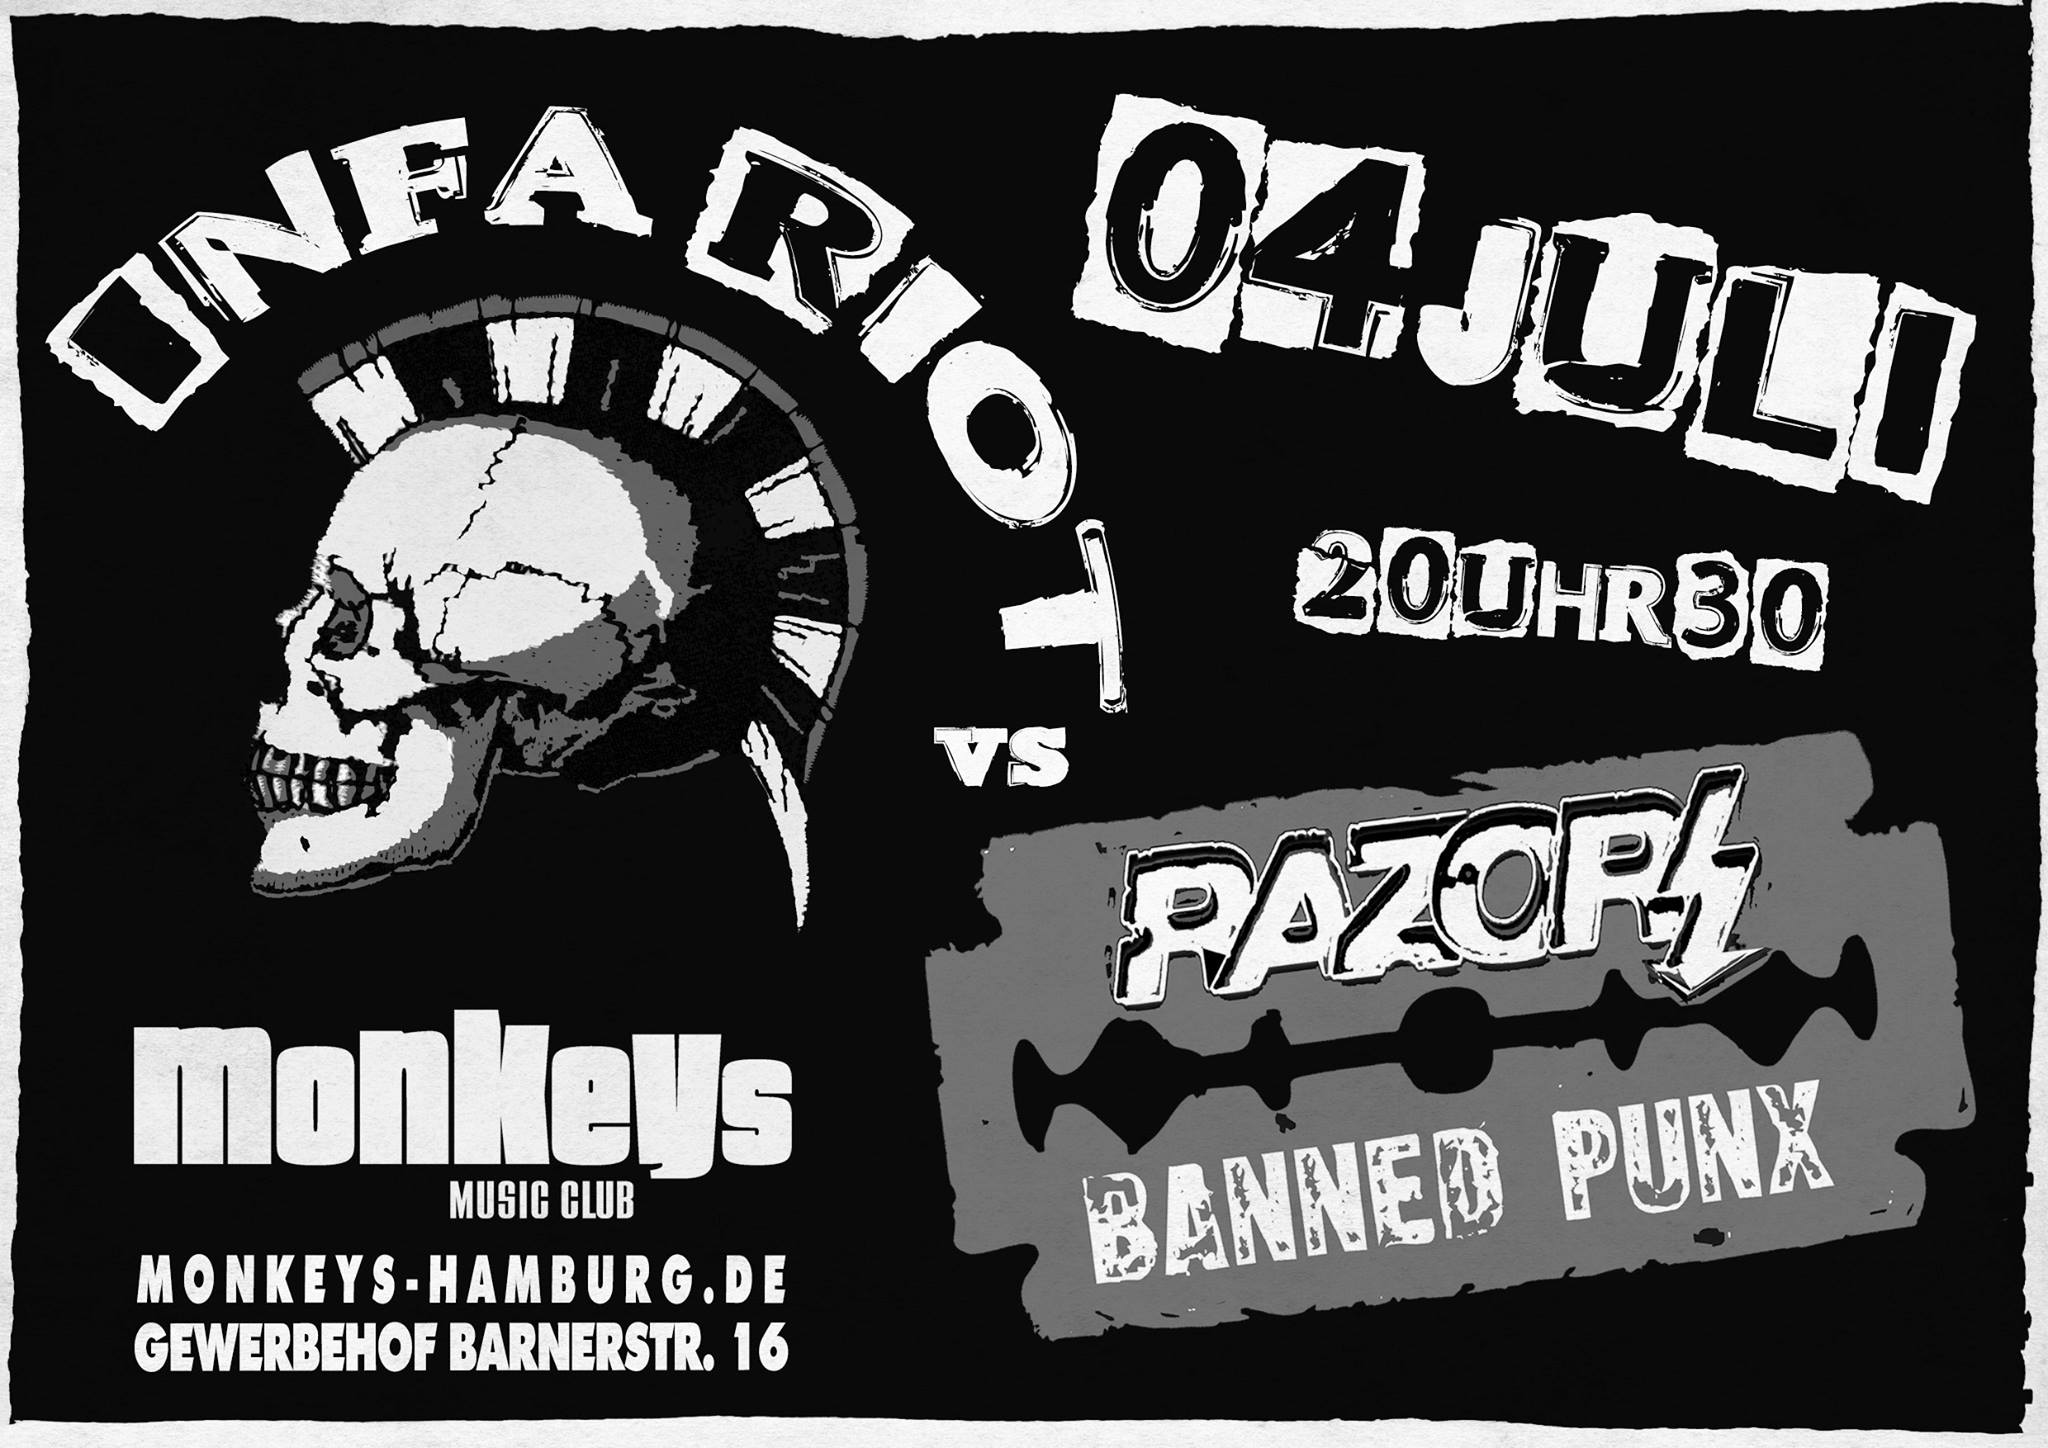 infa-riot + razors @monkeys, hamburg, 04.07.2015